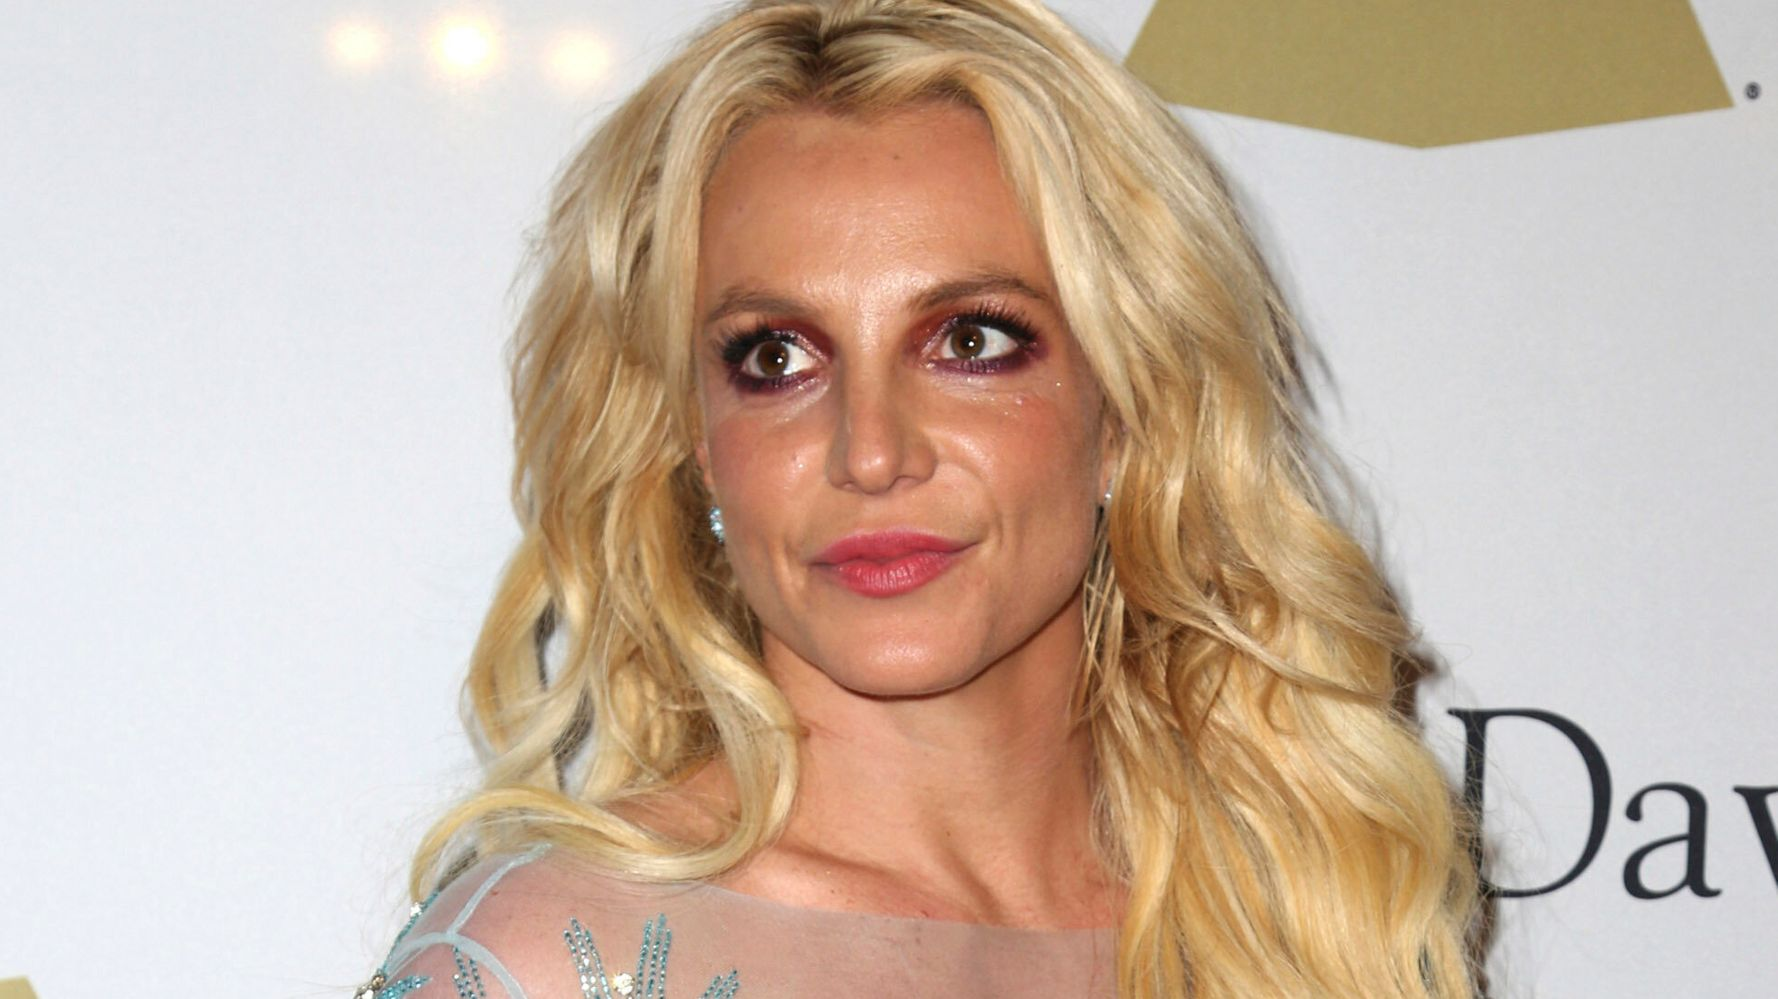 Britney Spears Is 'Afraid Of Her Father' And Won't Perform If He's In Control, Lawyer Says